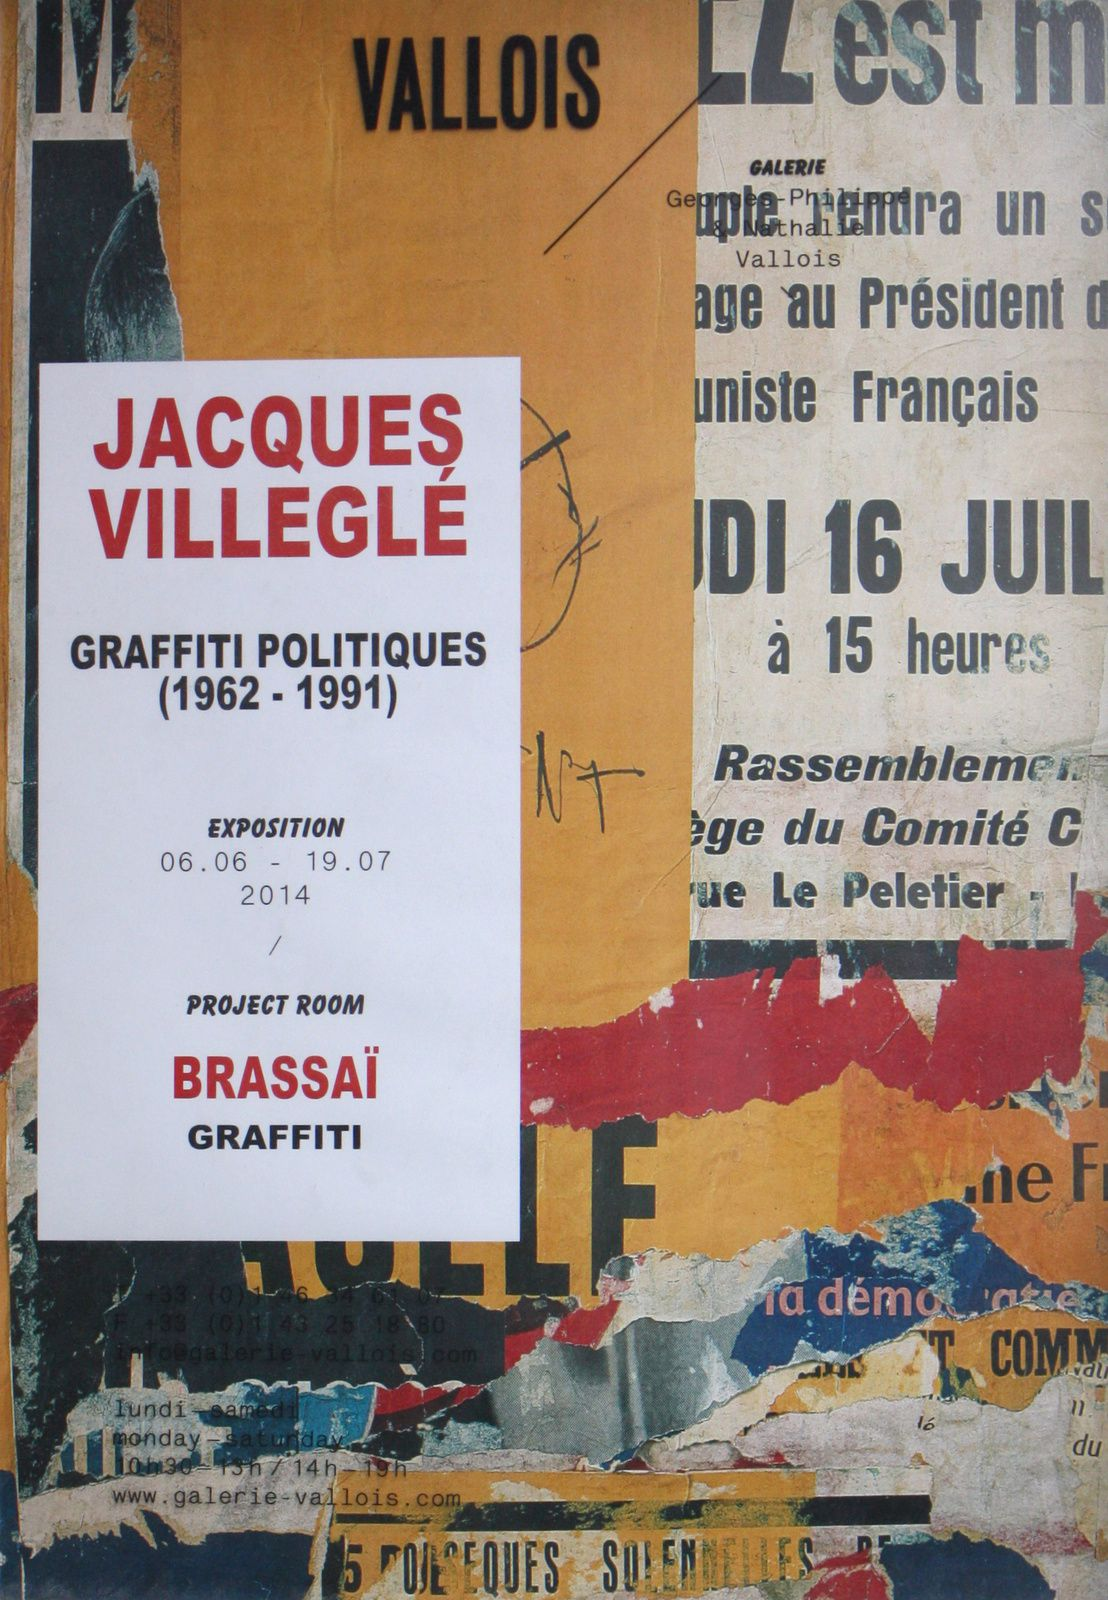 Expo Collective Contemporaine: JACQUES VILLEGLÉ &quot&#x3B;Graffiti Politiques&quot&#x3B;  (1962-1991)  /  BRASSAÏ  Graffiti